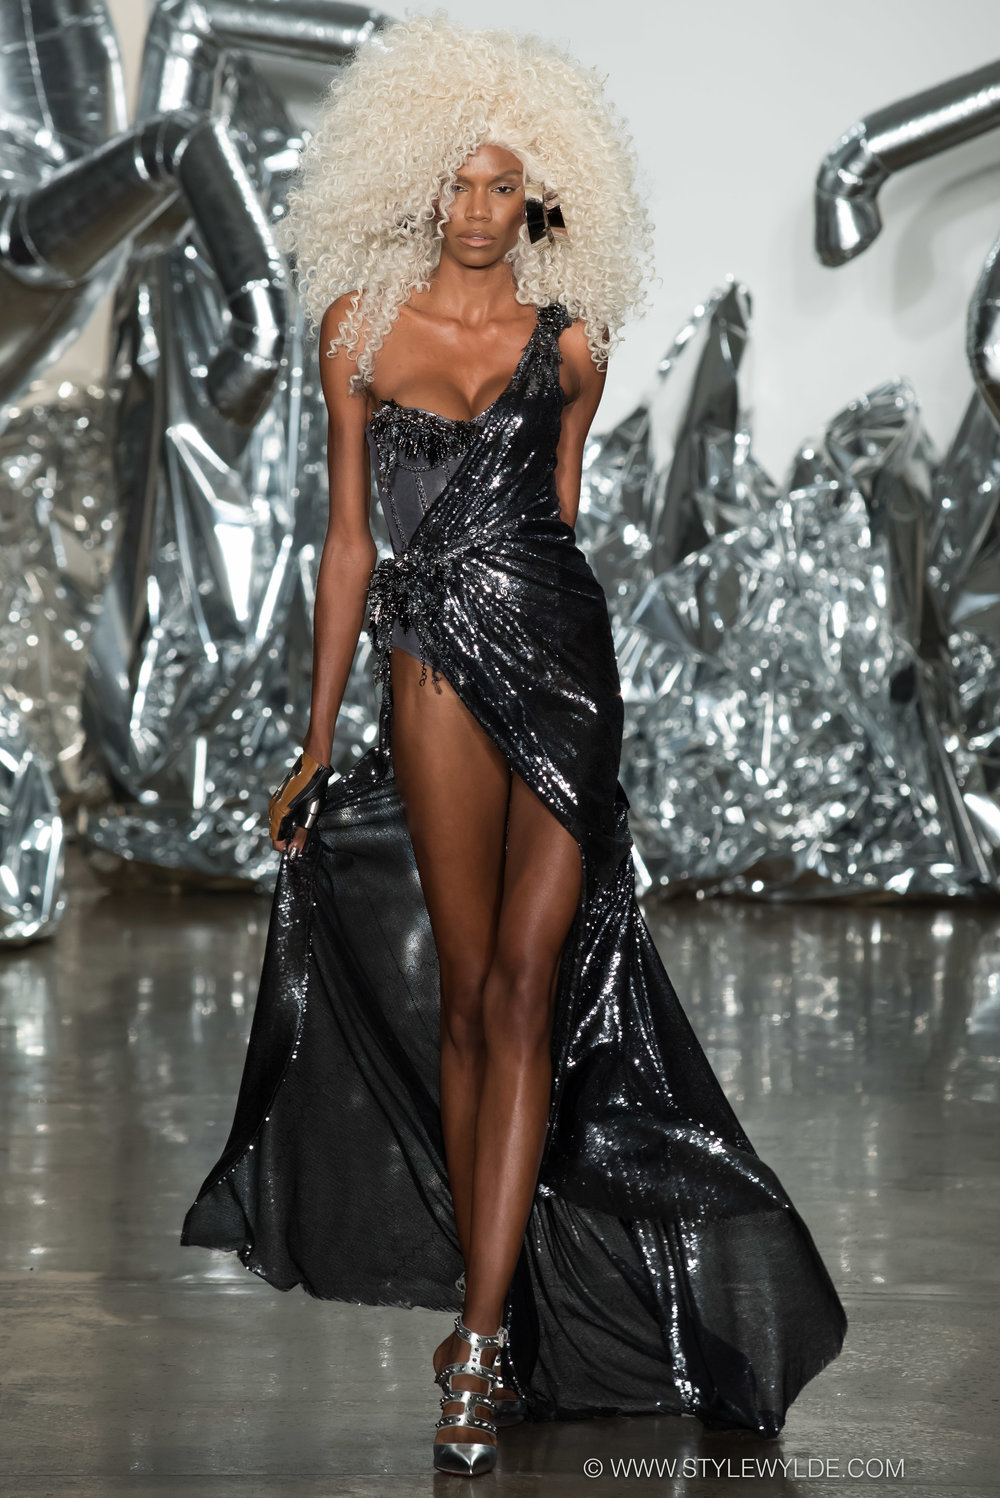 stylewylde-The Blonds SS17-FOH- Edits-49.jpg